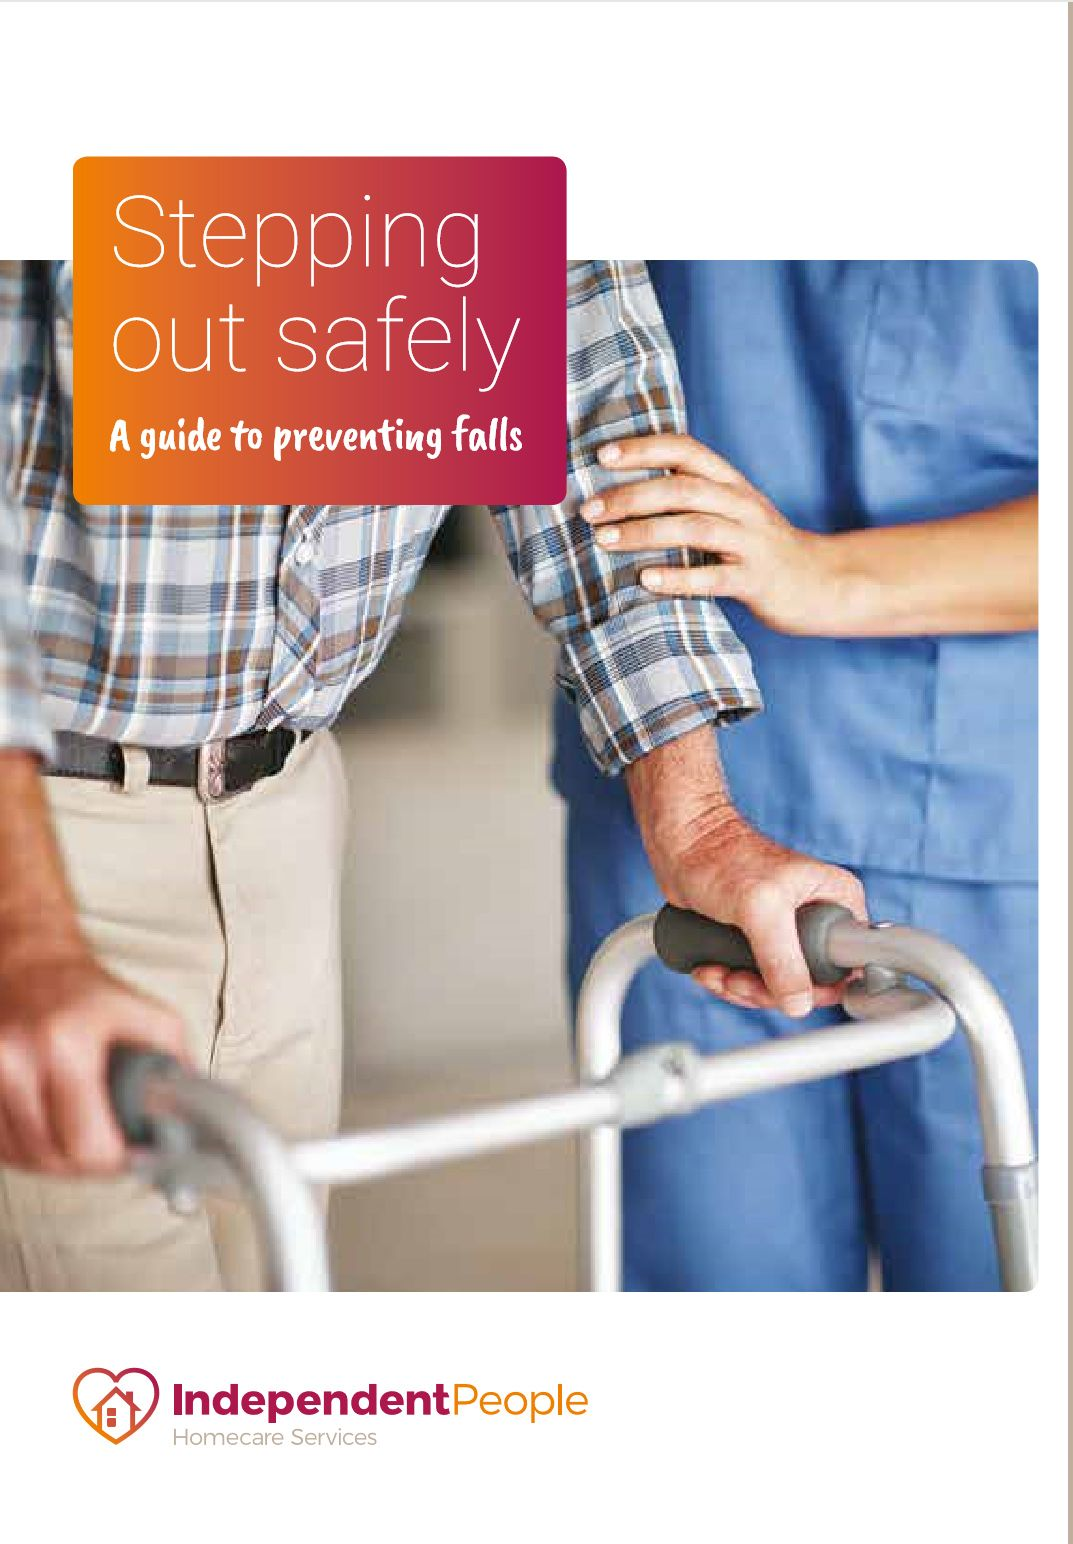 Free live in care brochures and guides to download today